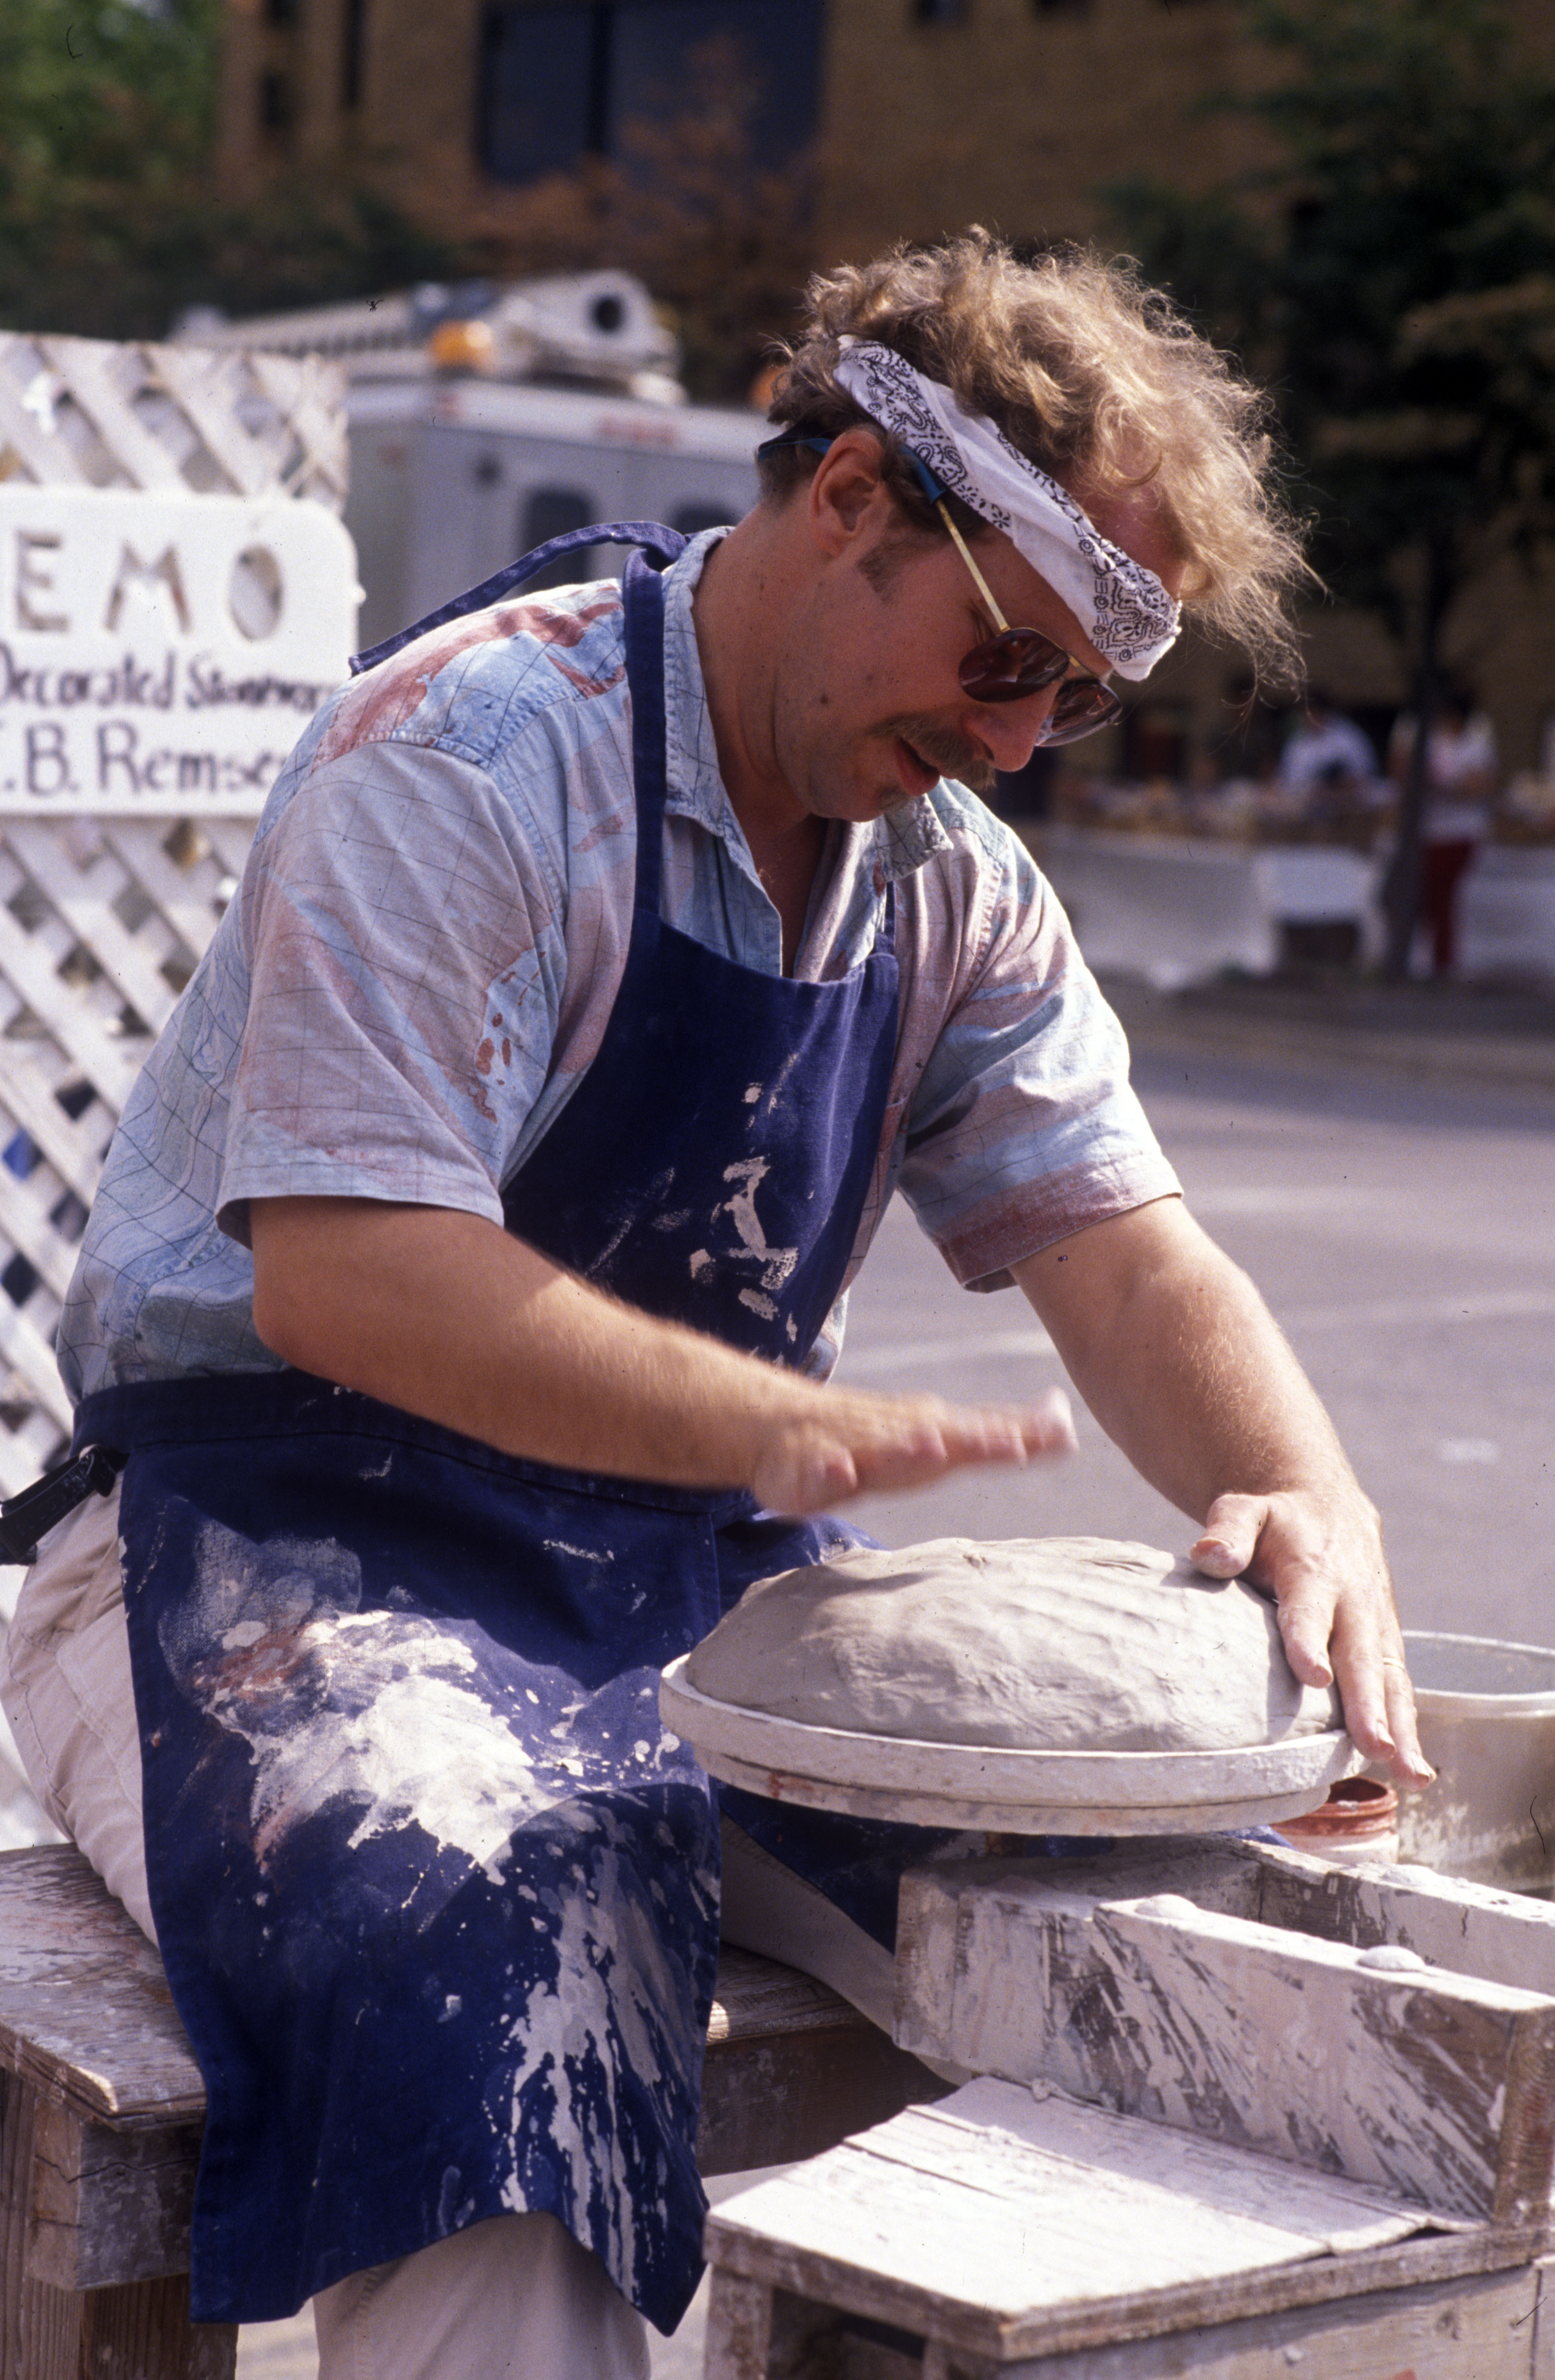 Potter I. B. Remsen Demonstrating at the Ann Arbor Art Fair, July 1988 image